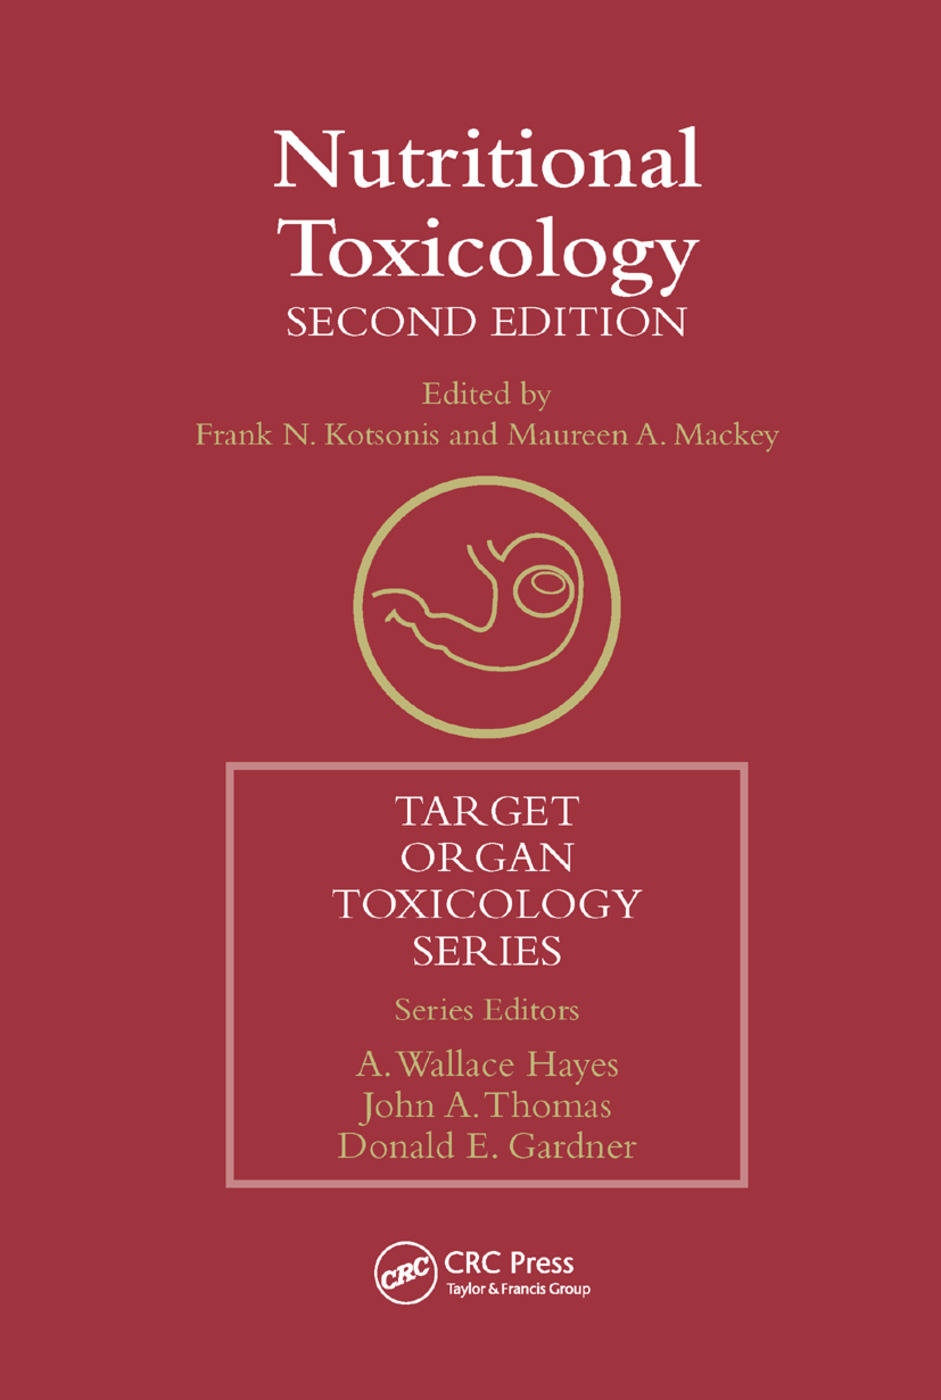 Nutritional Toxicology